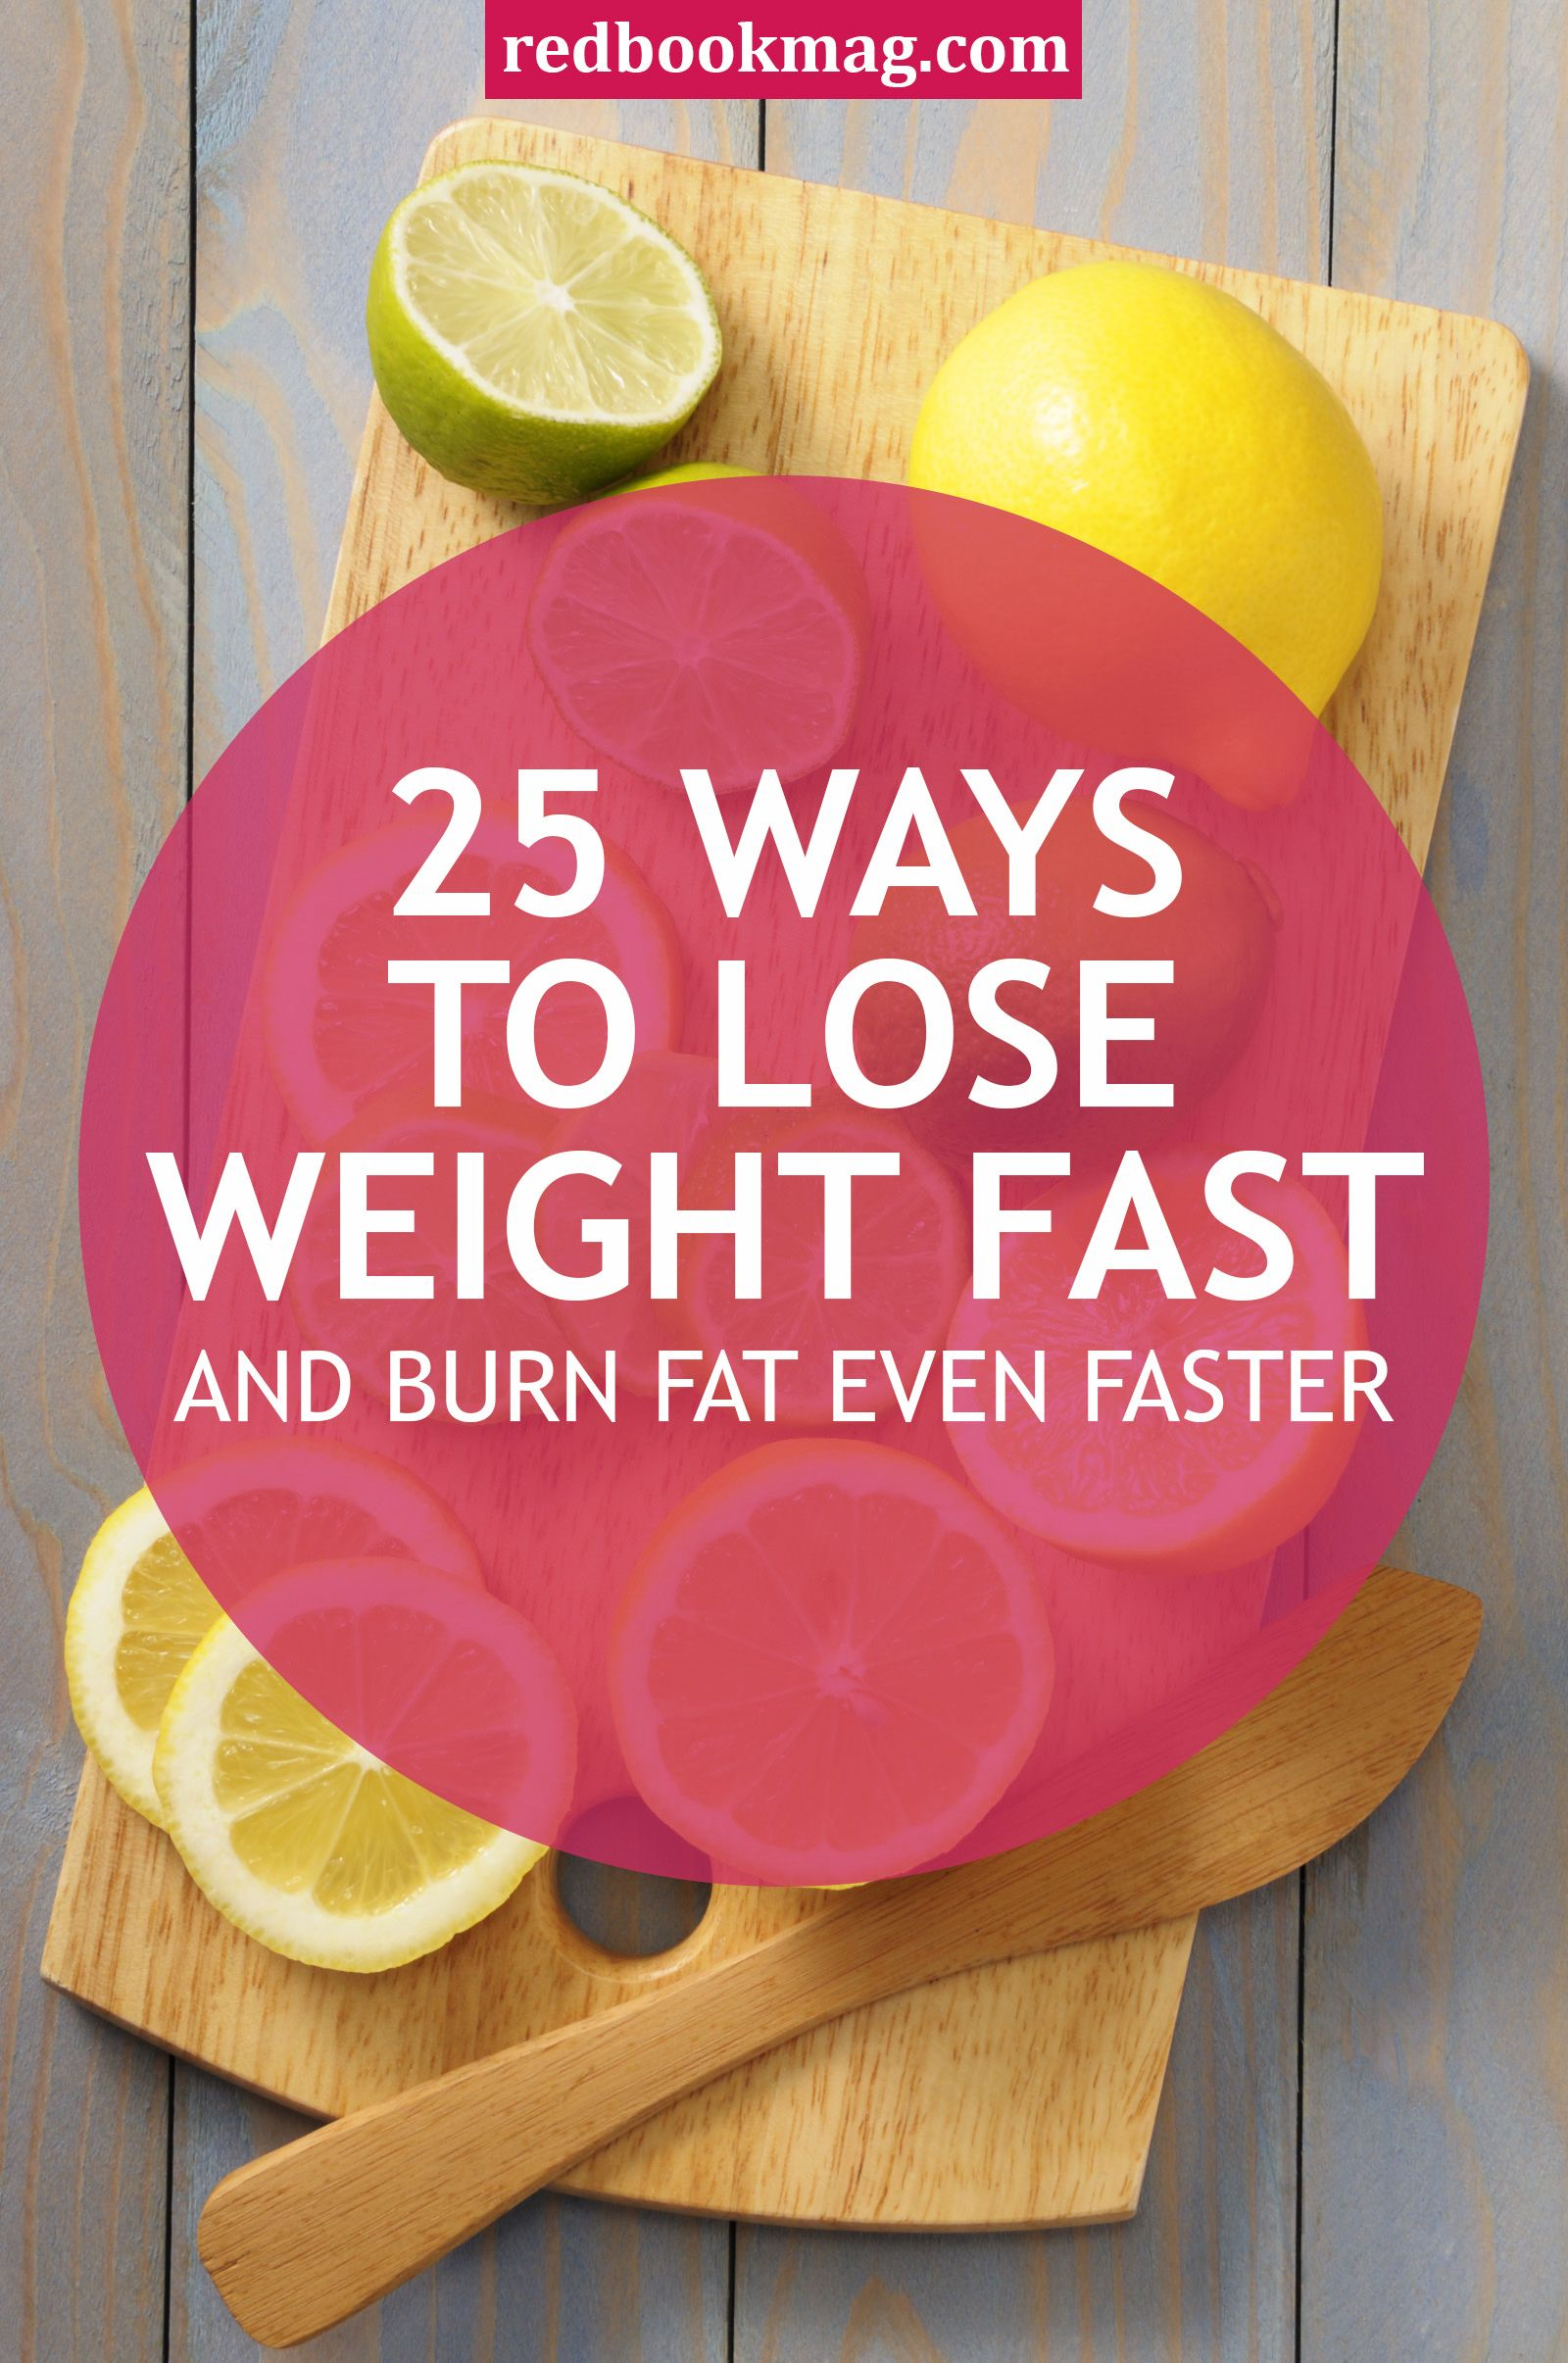 35 Ways to Lose Weight Fast — And Burn Fat Even Faster